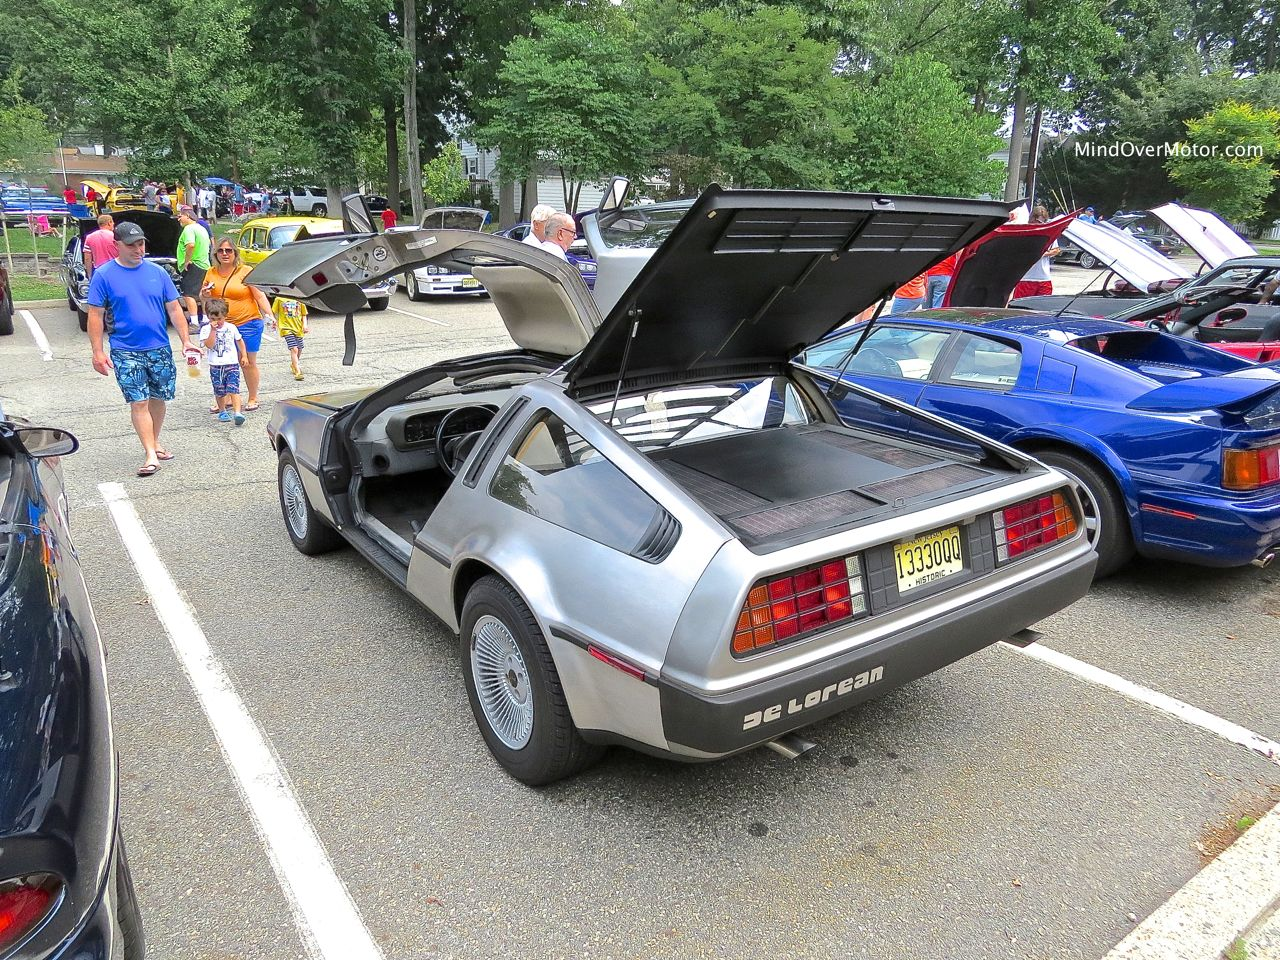 DeLorean DMC-12 Rear